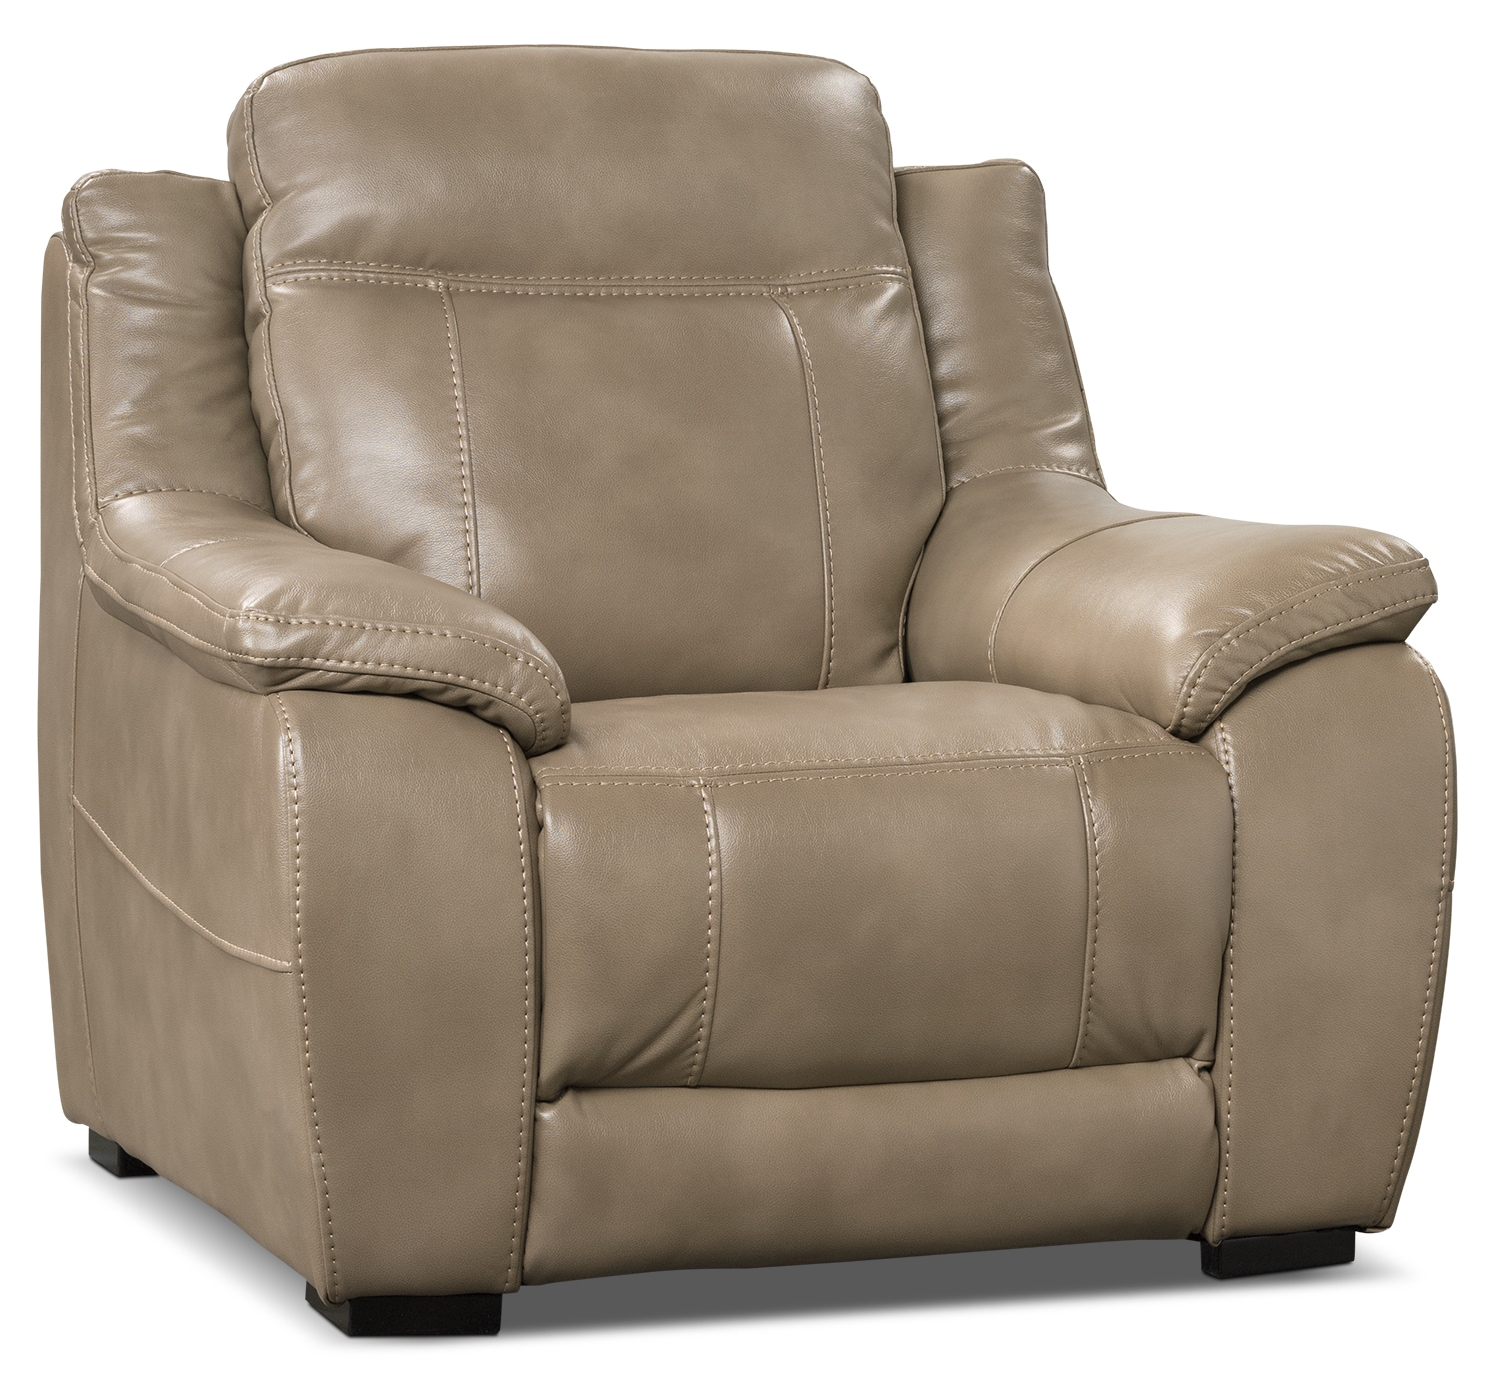 Novo Leather-Look Fabric Chair – Taupe